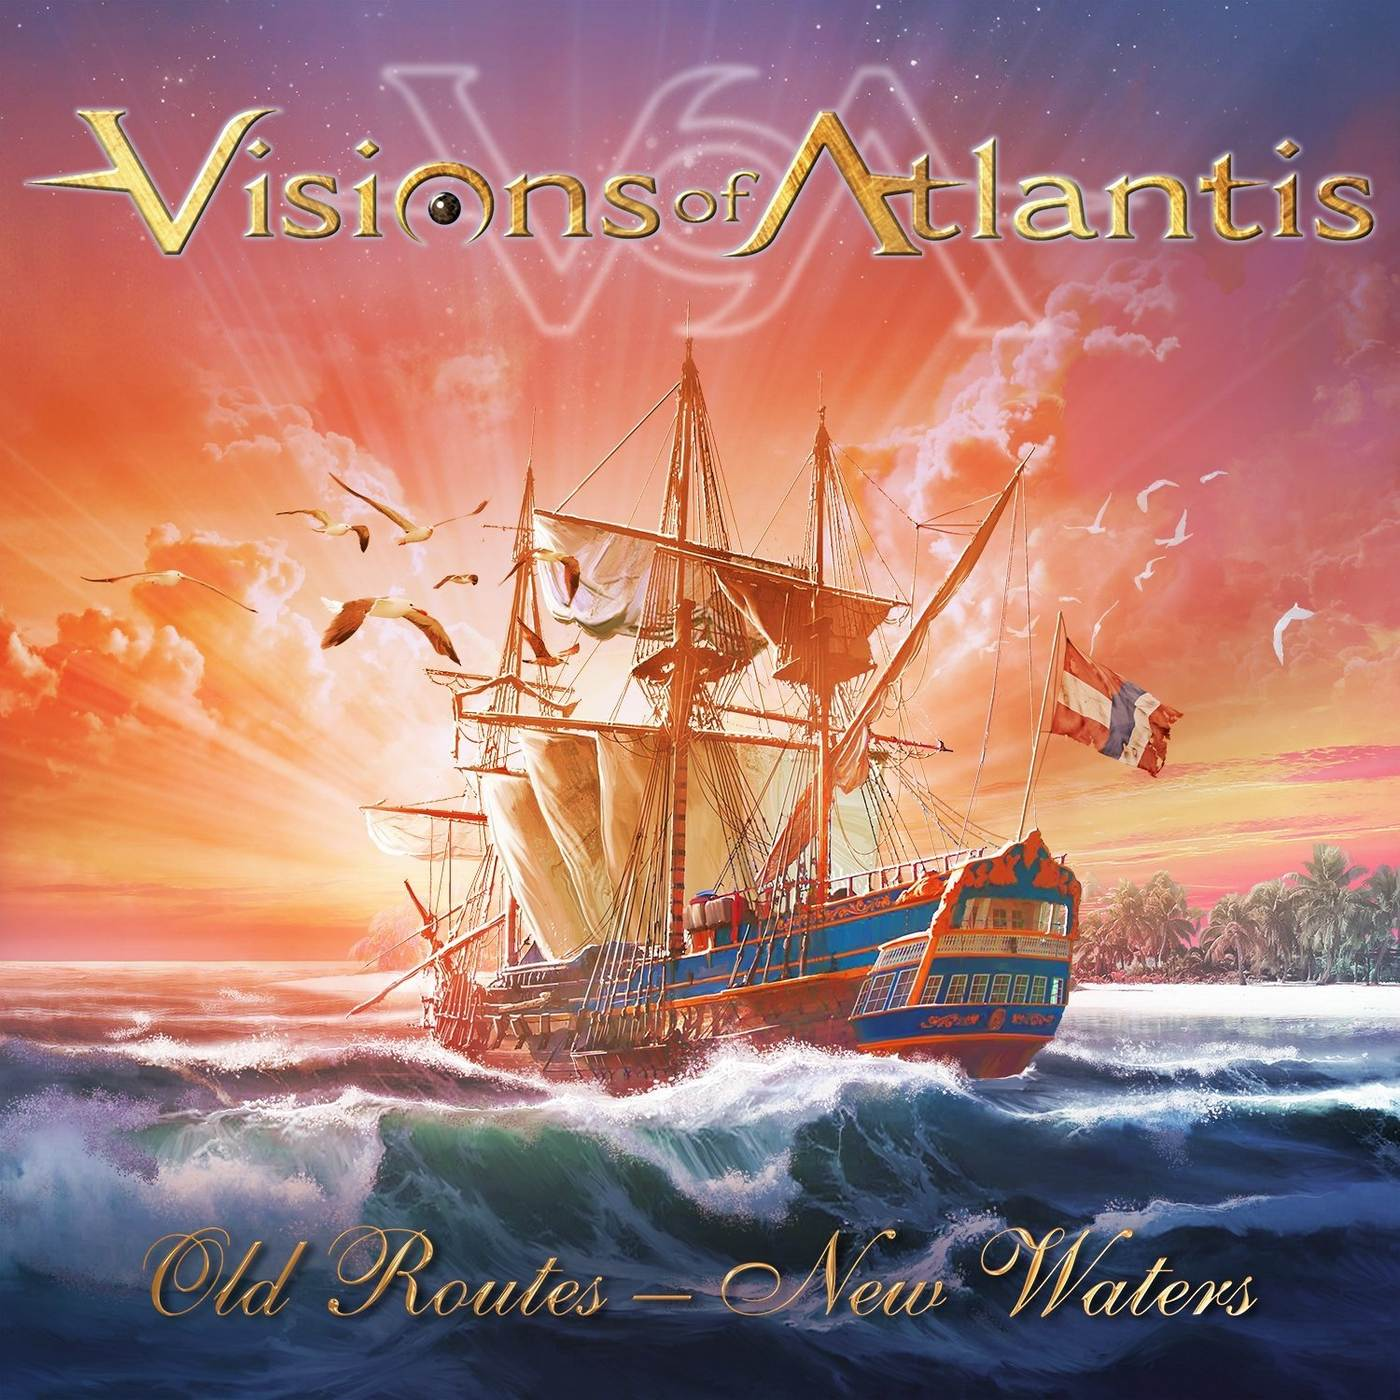 Visions of Atlantis: Old Routes - New Waters (2016) Book Cover